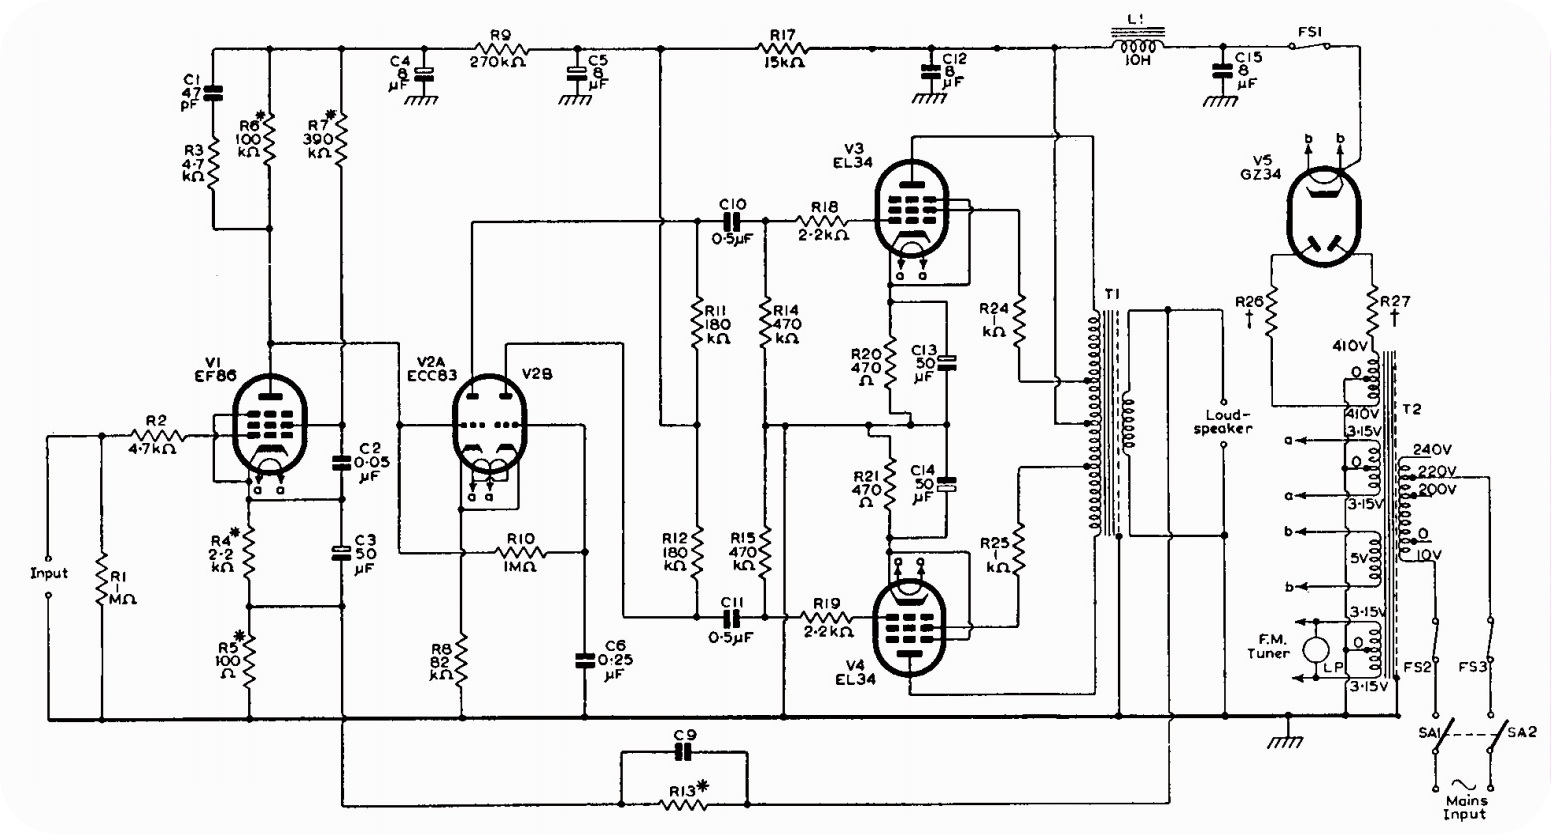 Xcrs 500m Wiring Diagram : 24 Wiring Diagram Images